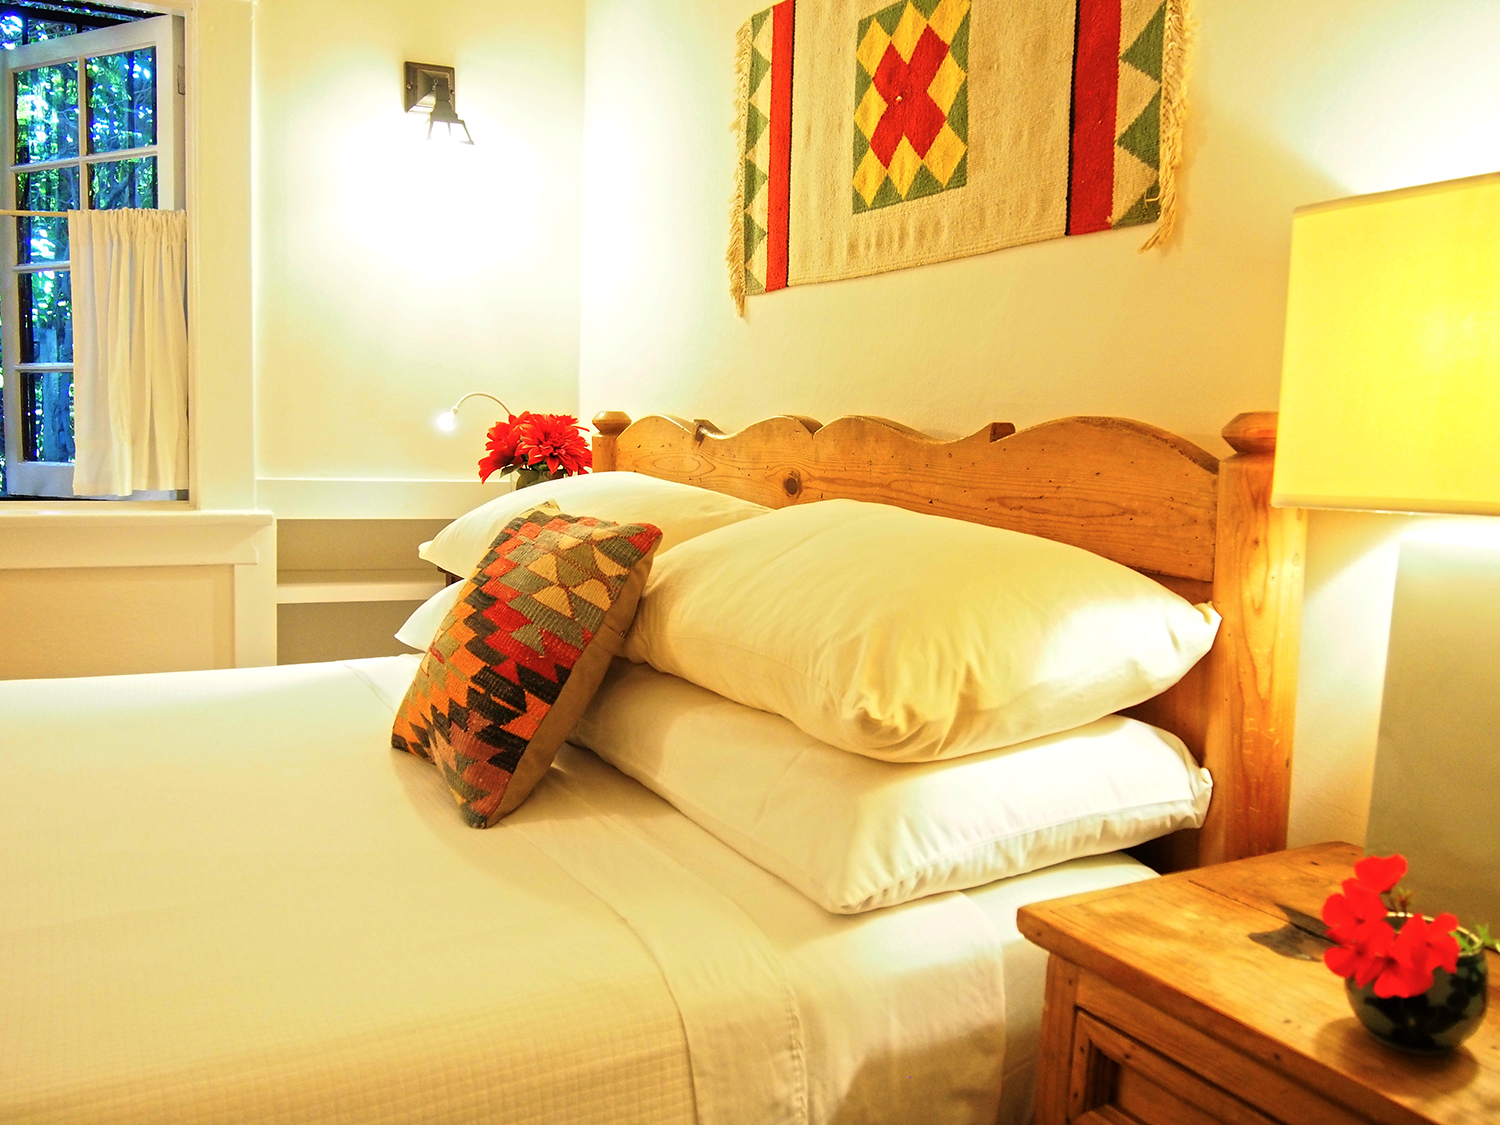 THE COTTAGE - $190 per night